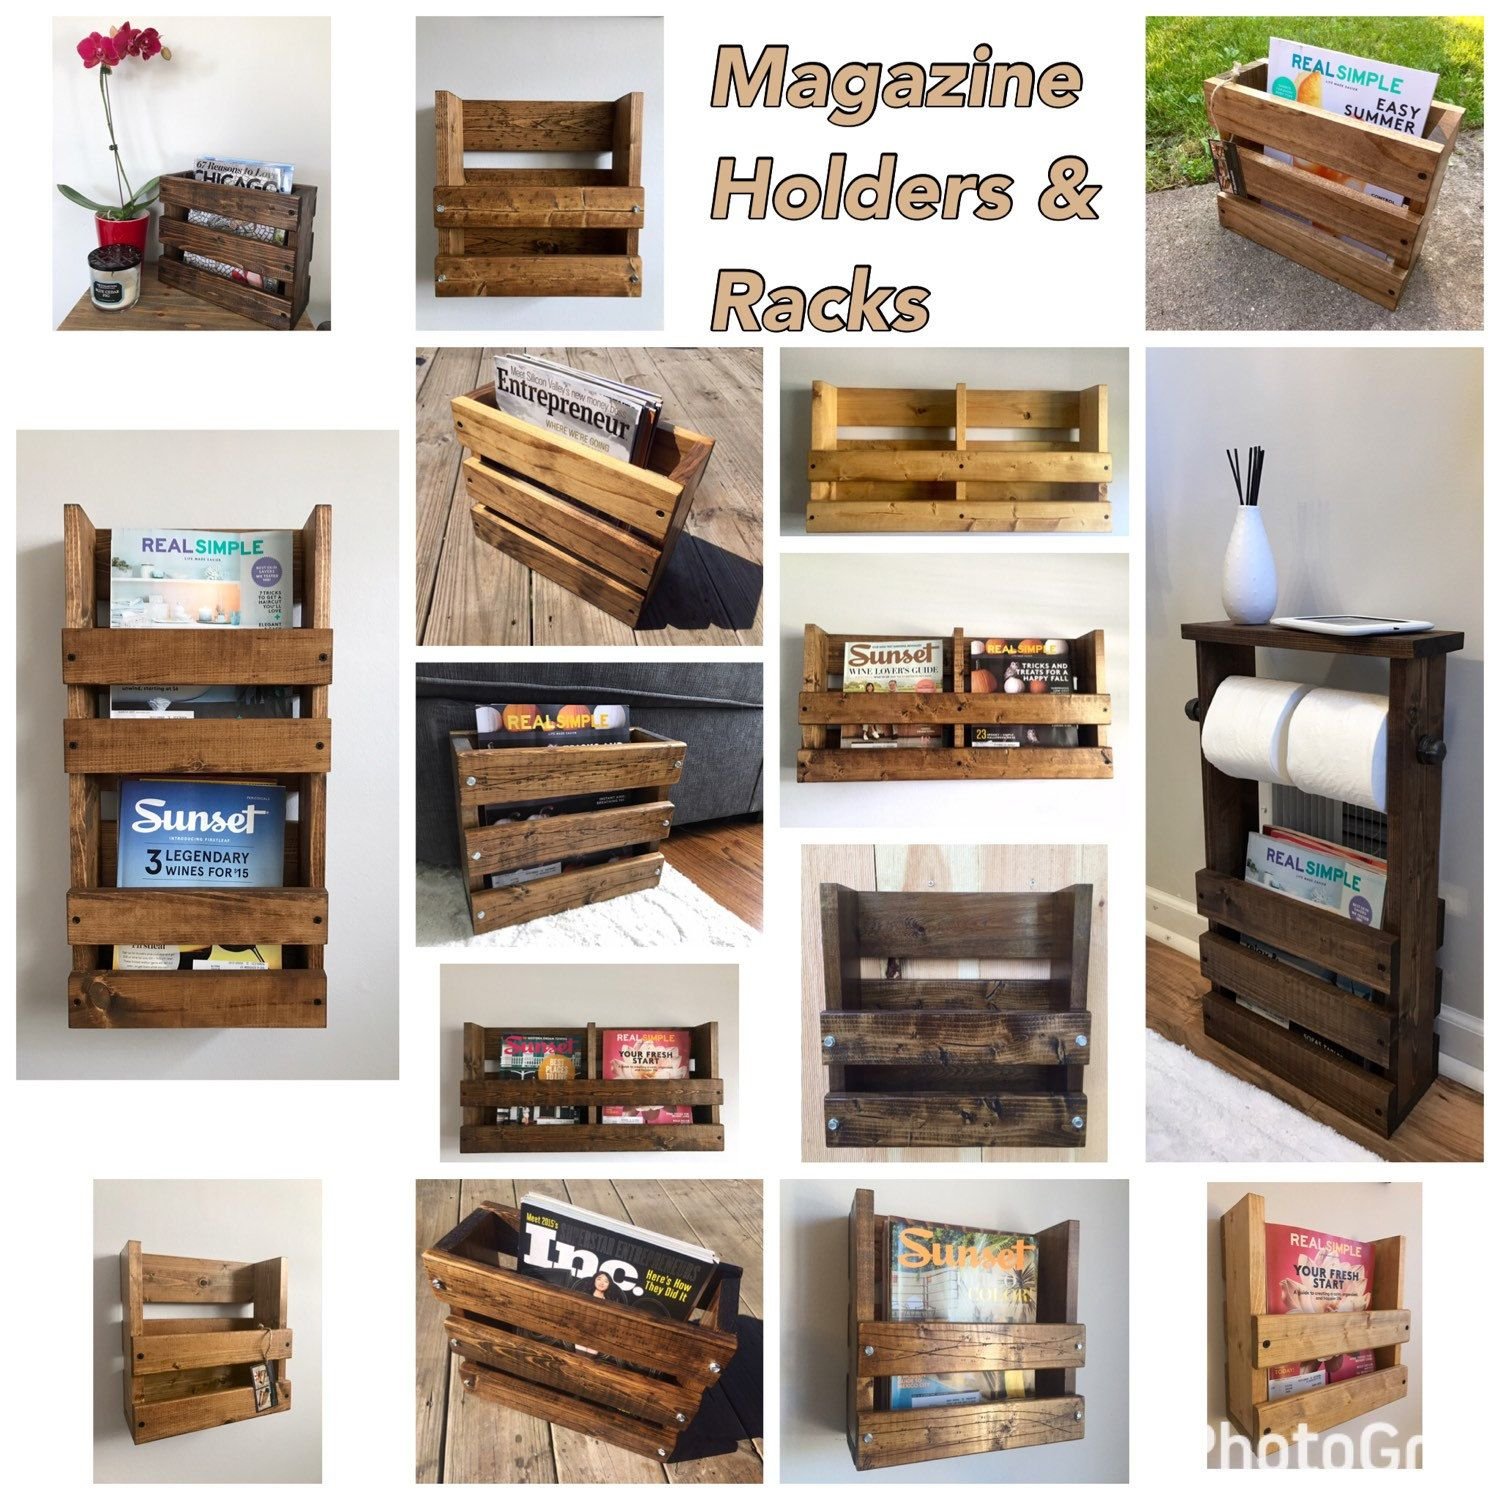 Looking for a magazine rack?